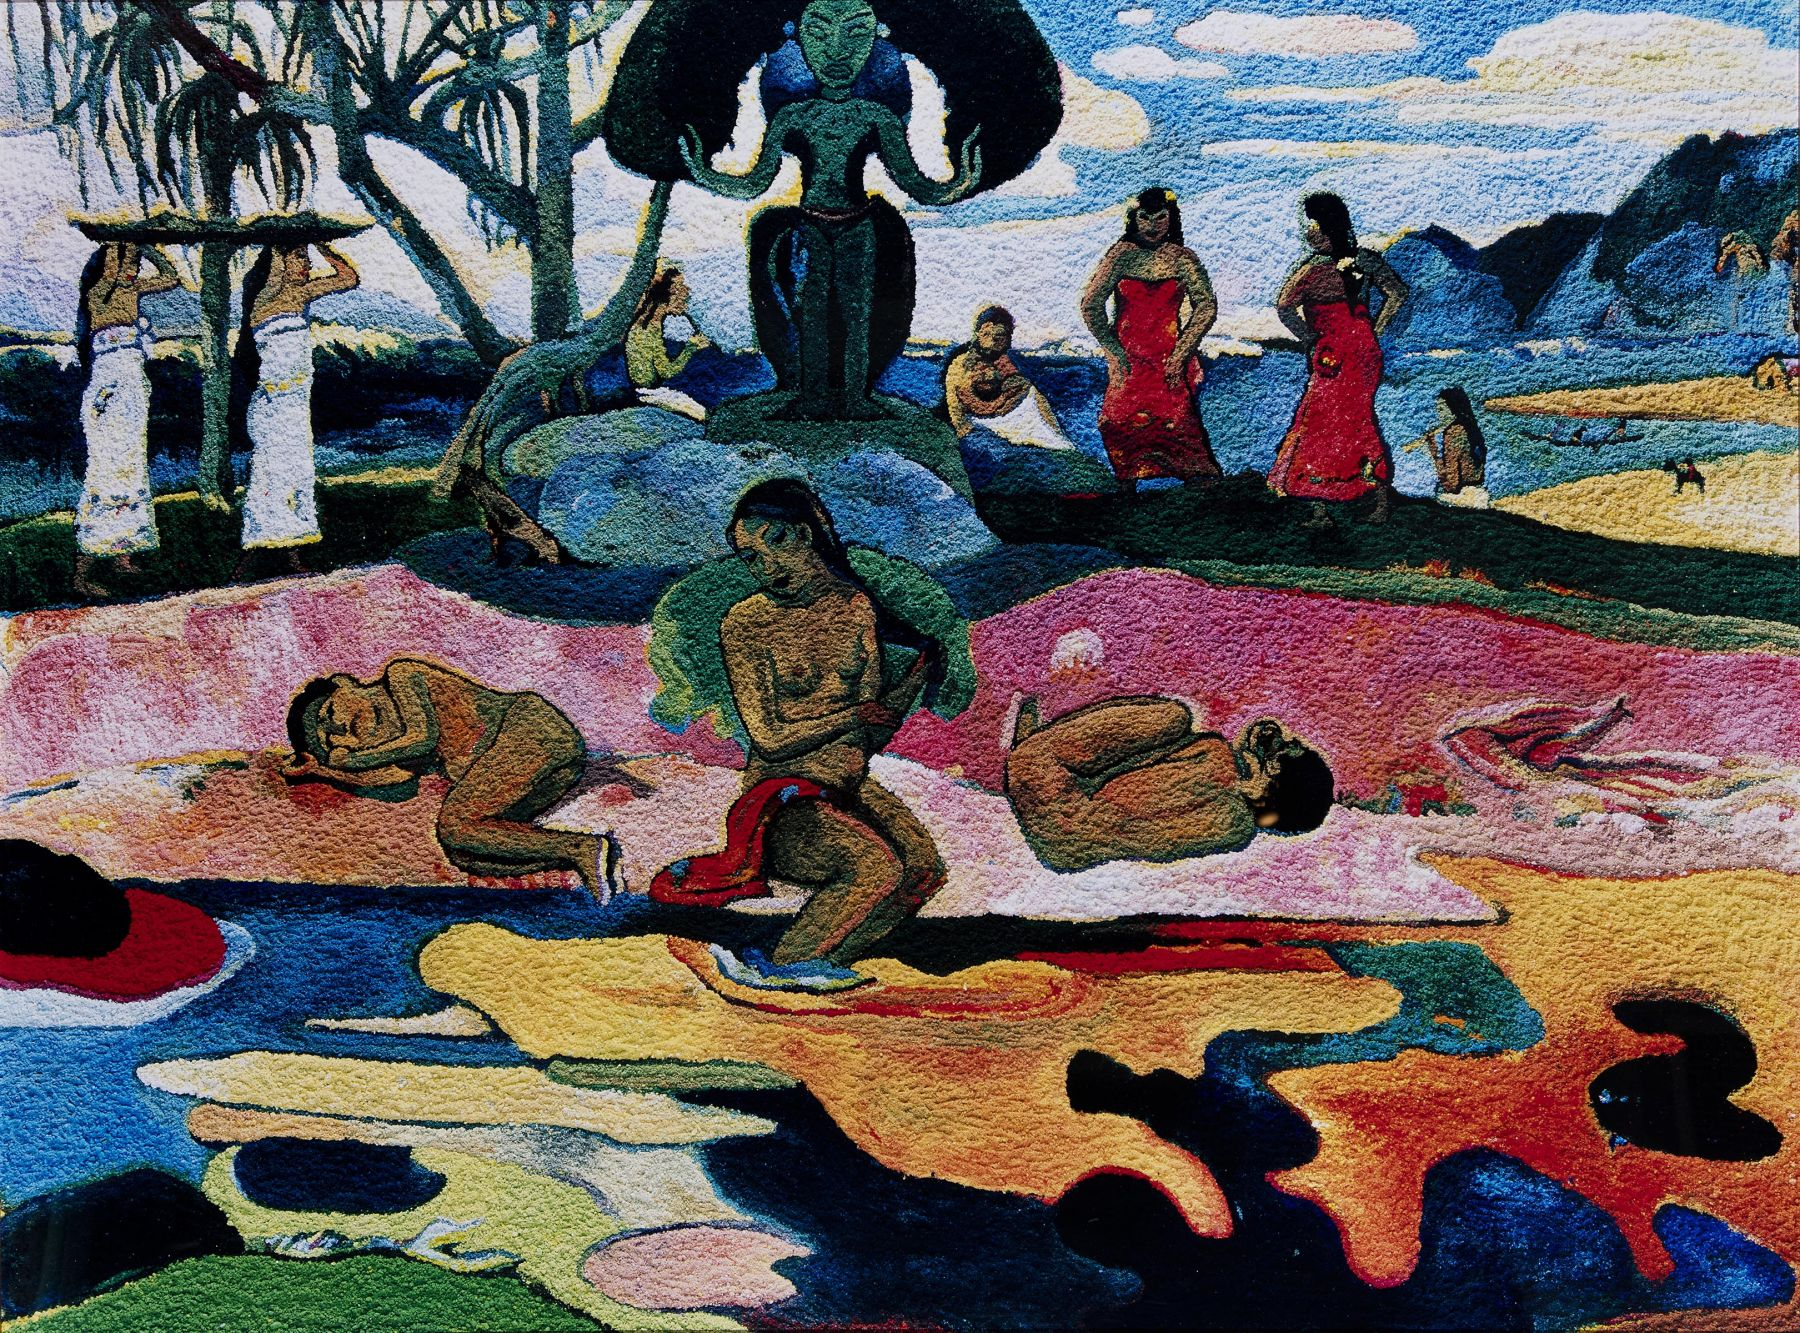 vik muniz Mahana No Atua (Day of the Gods), After Gauguin, from the Pictures of Pigment series